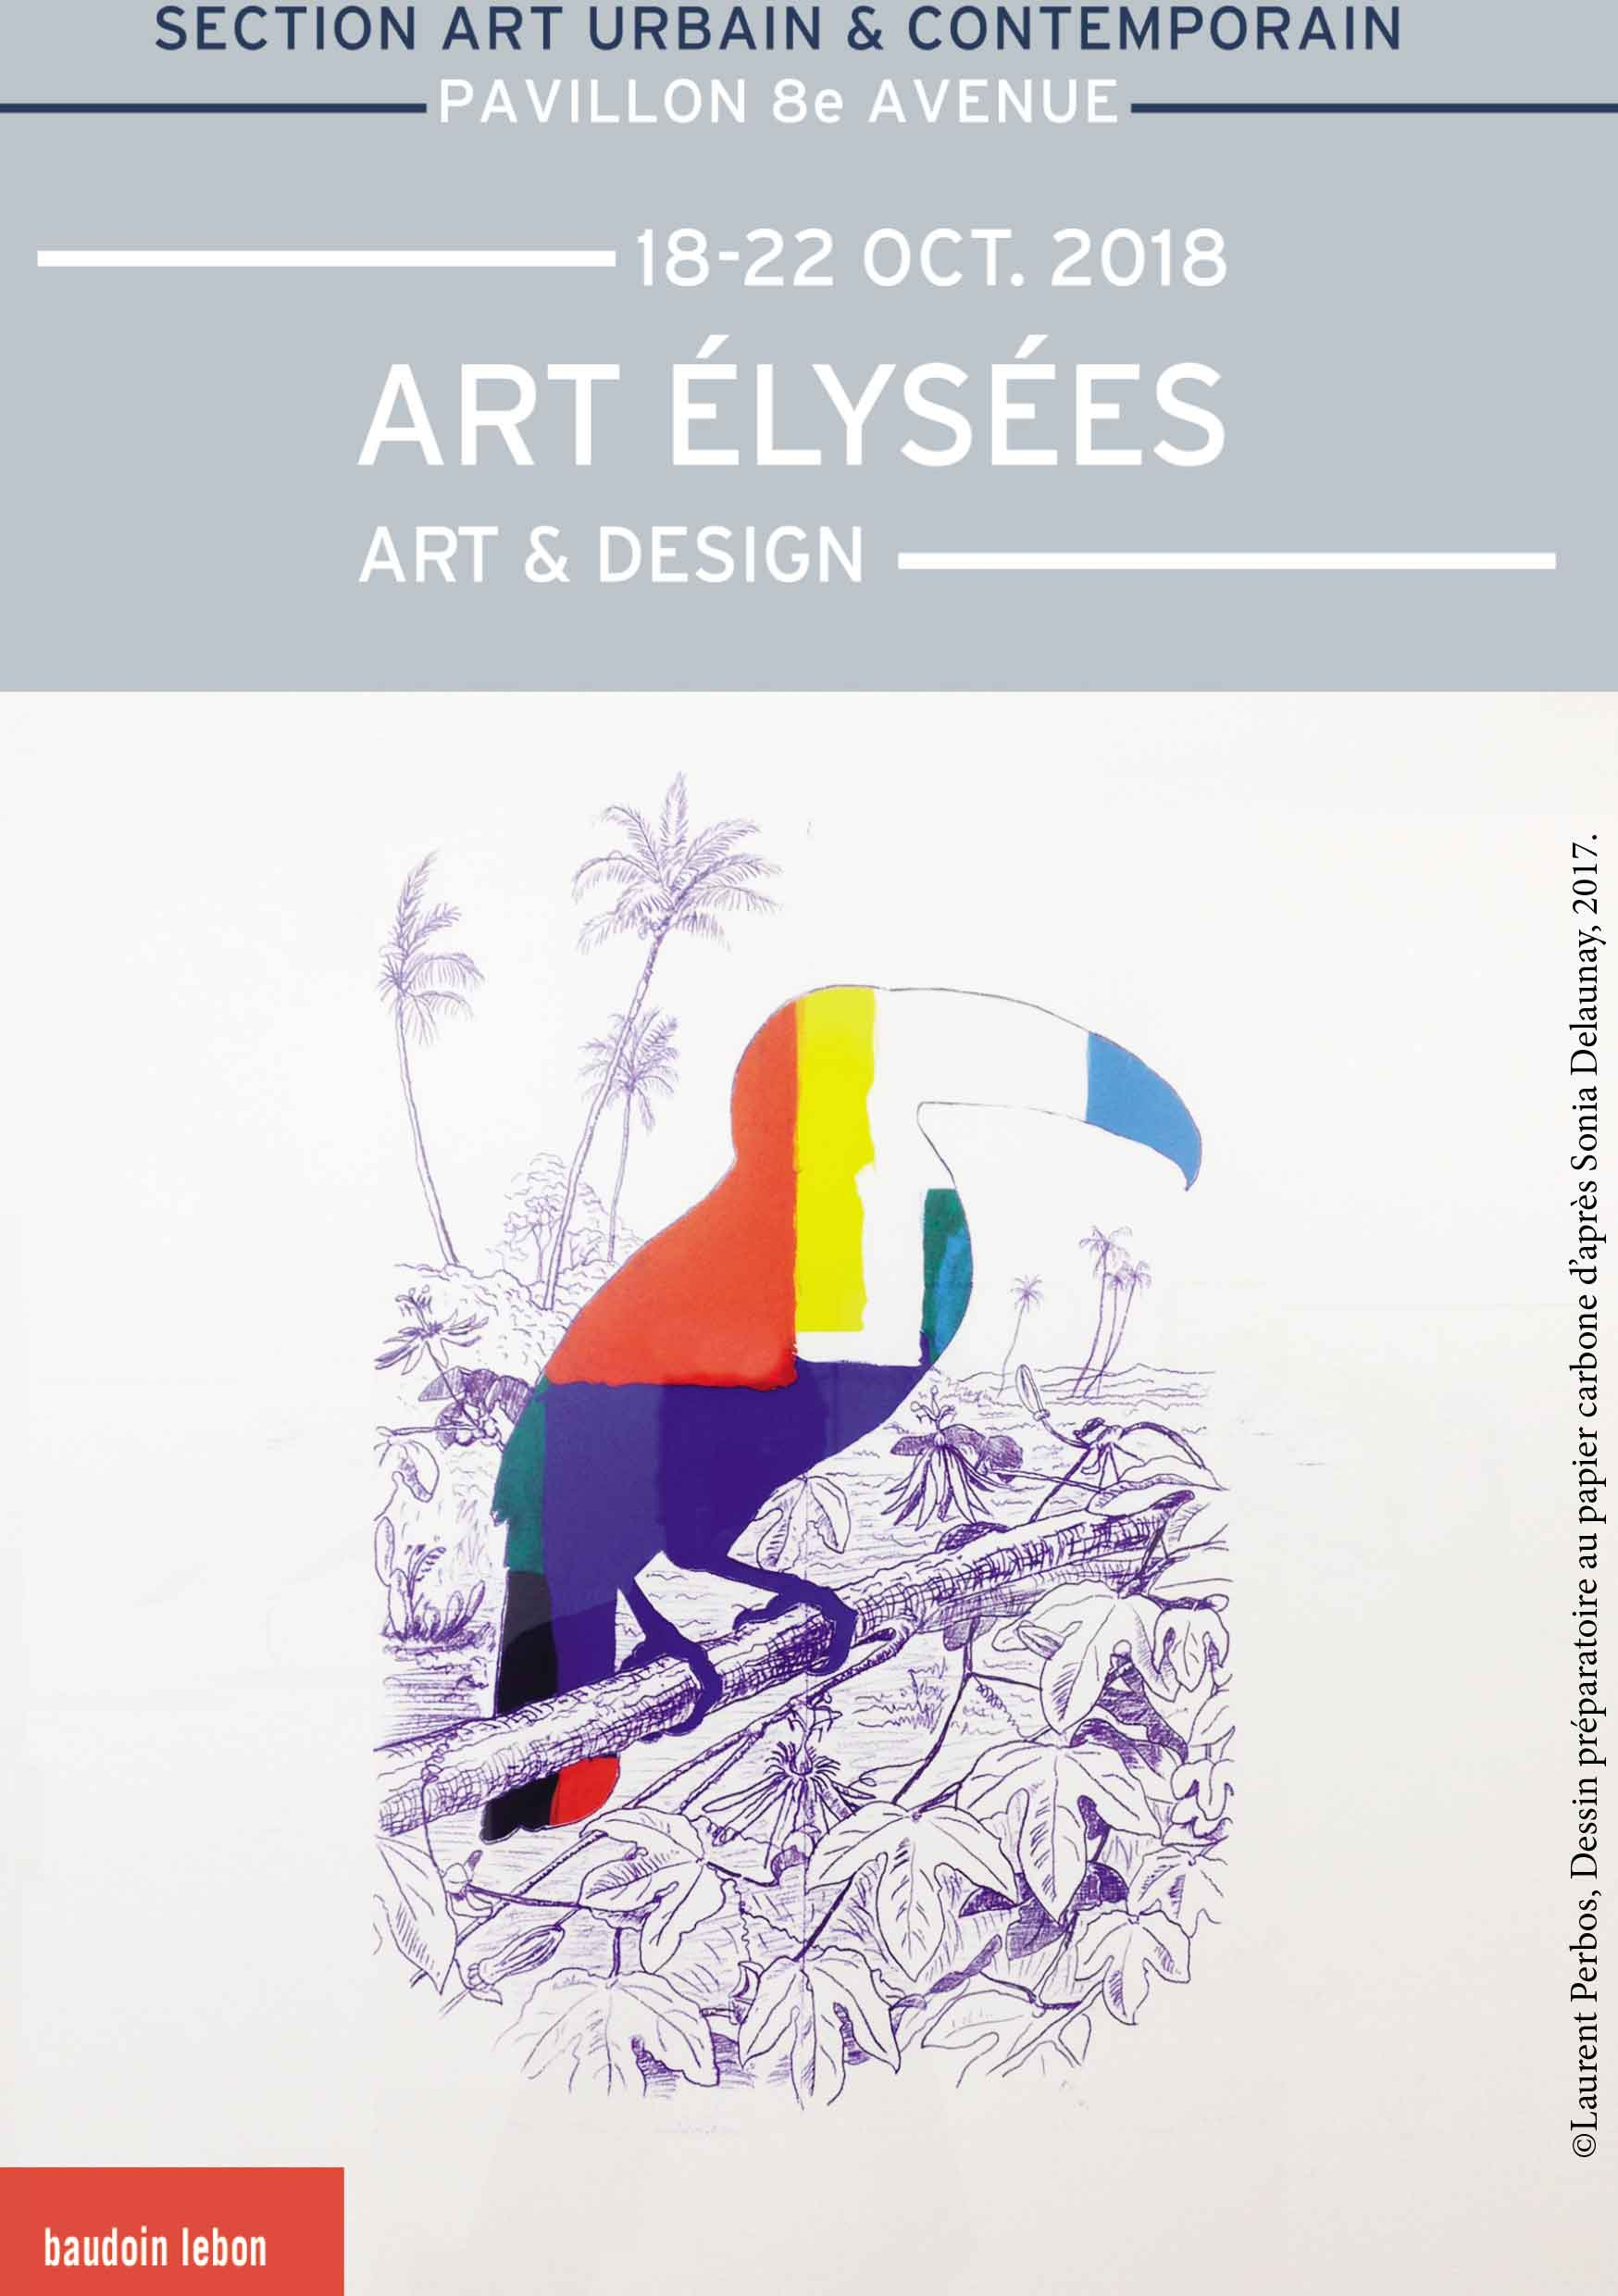 ART ELYSEES- 8E AVENUE